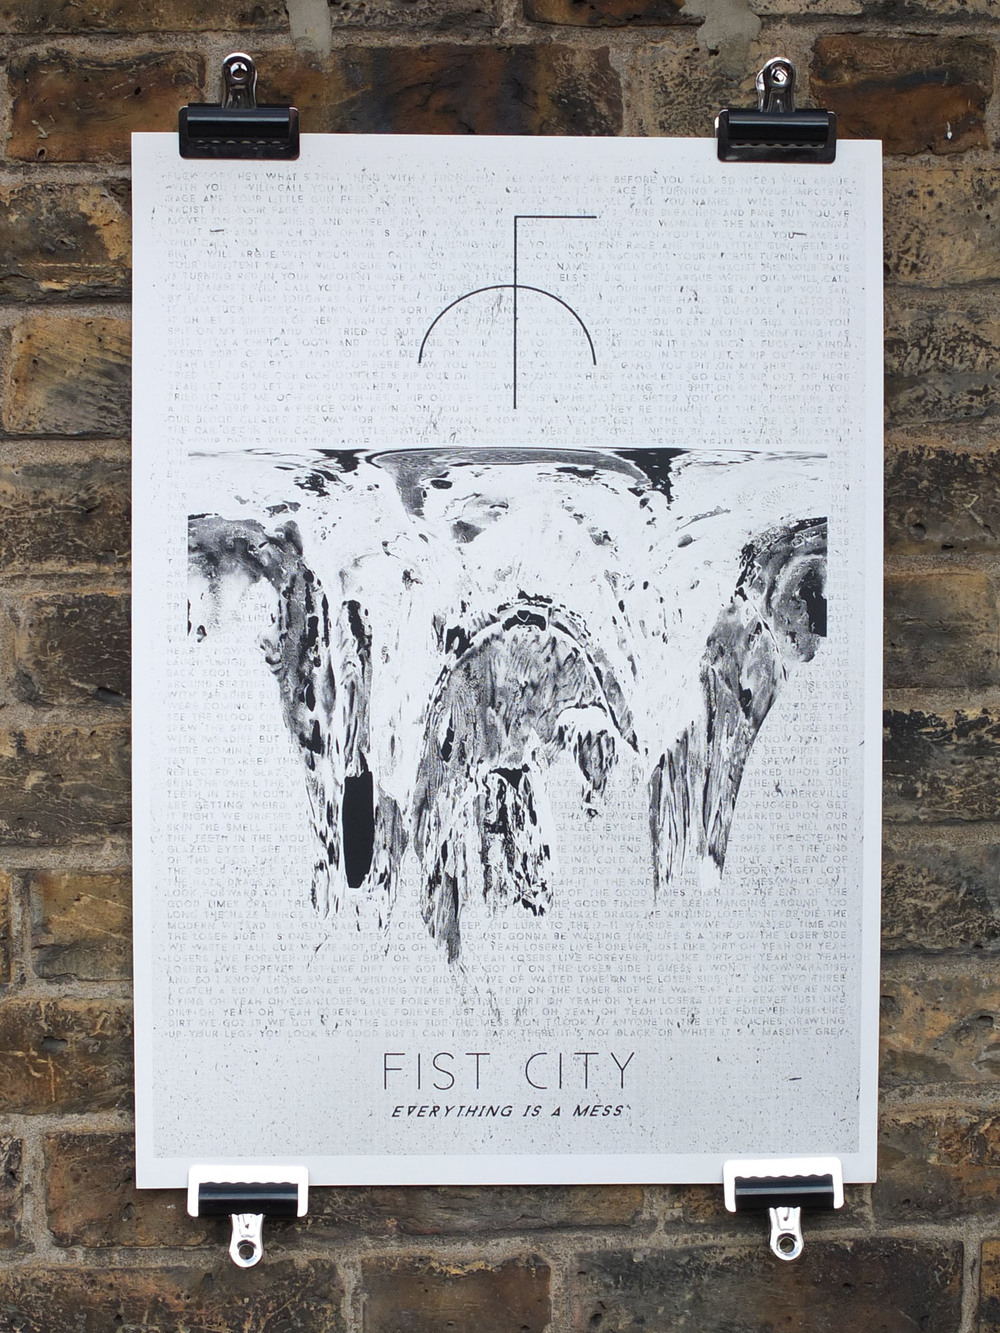 Fist City Screen Printed Tour Poster